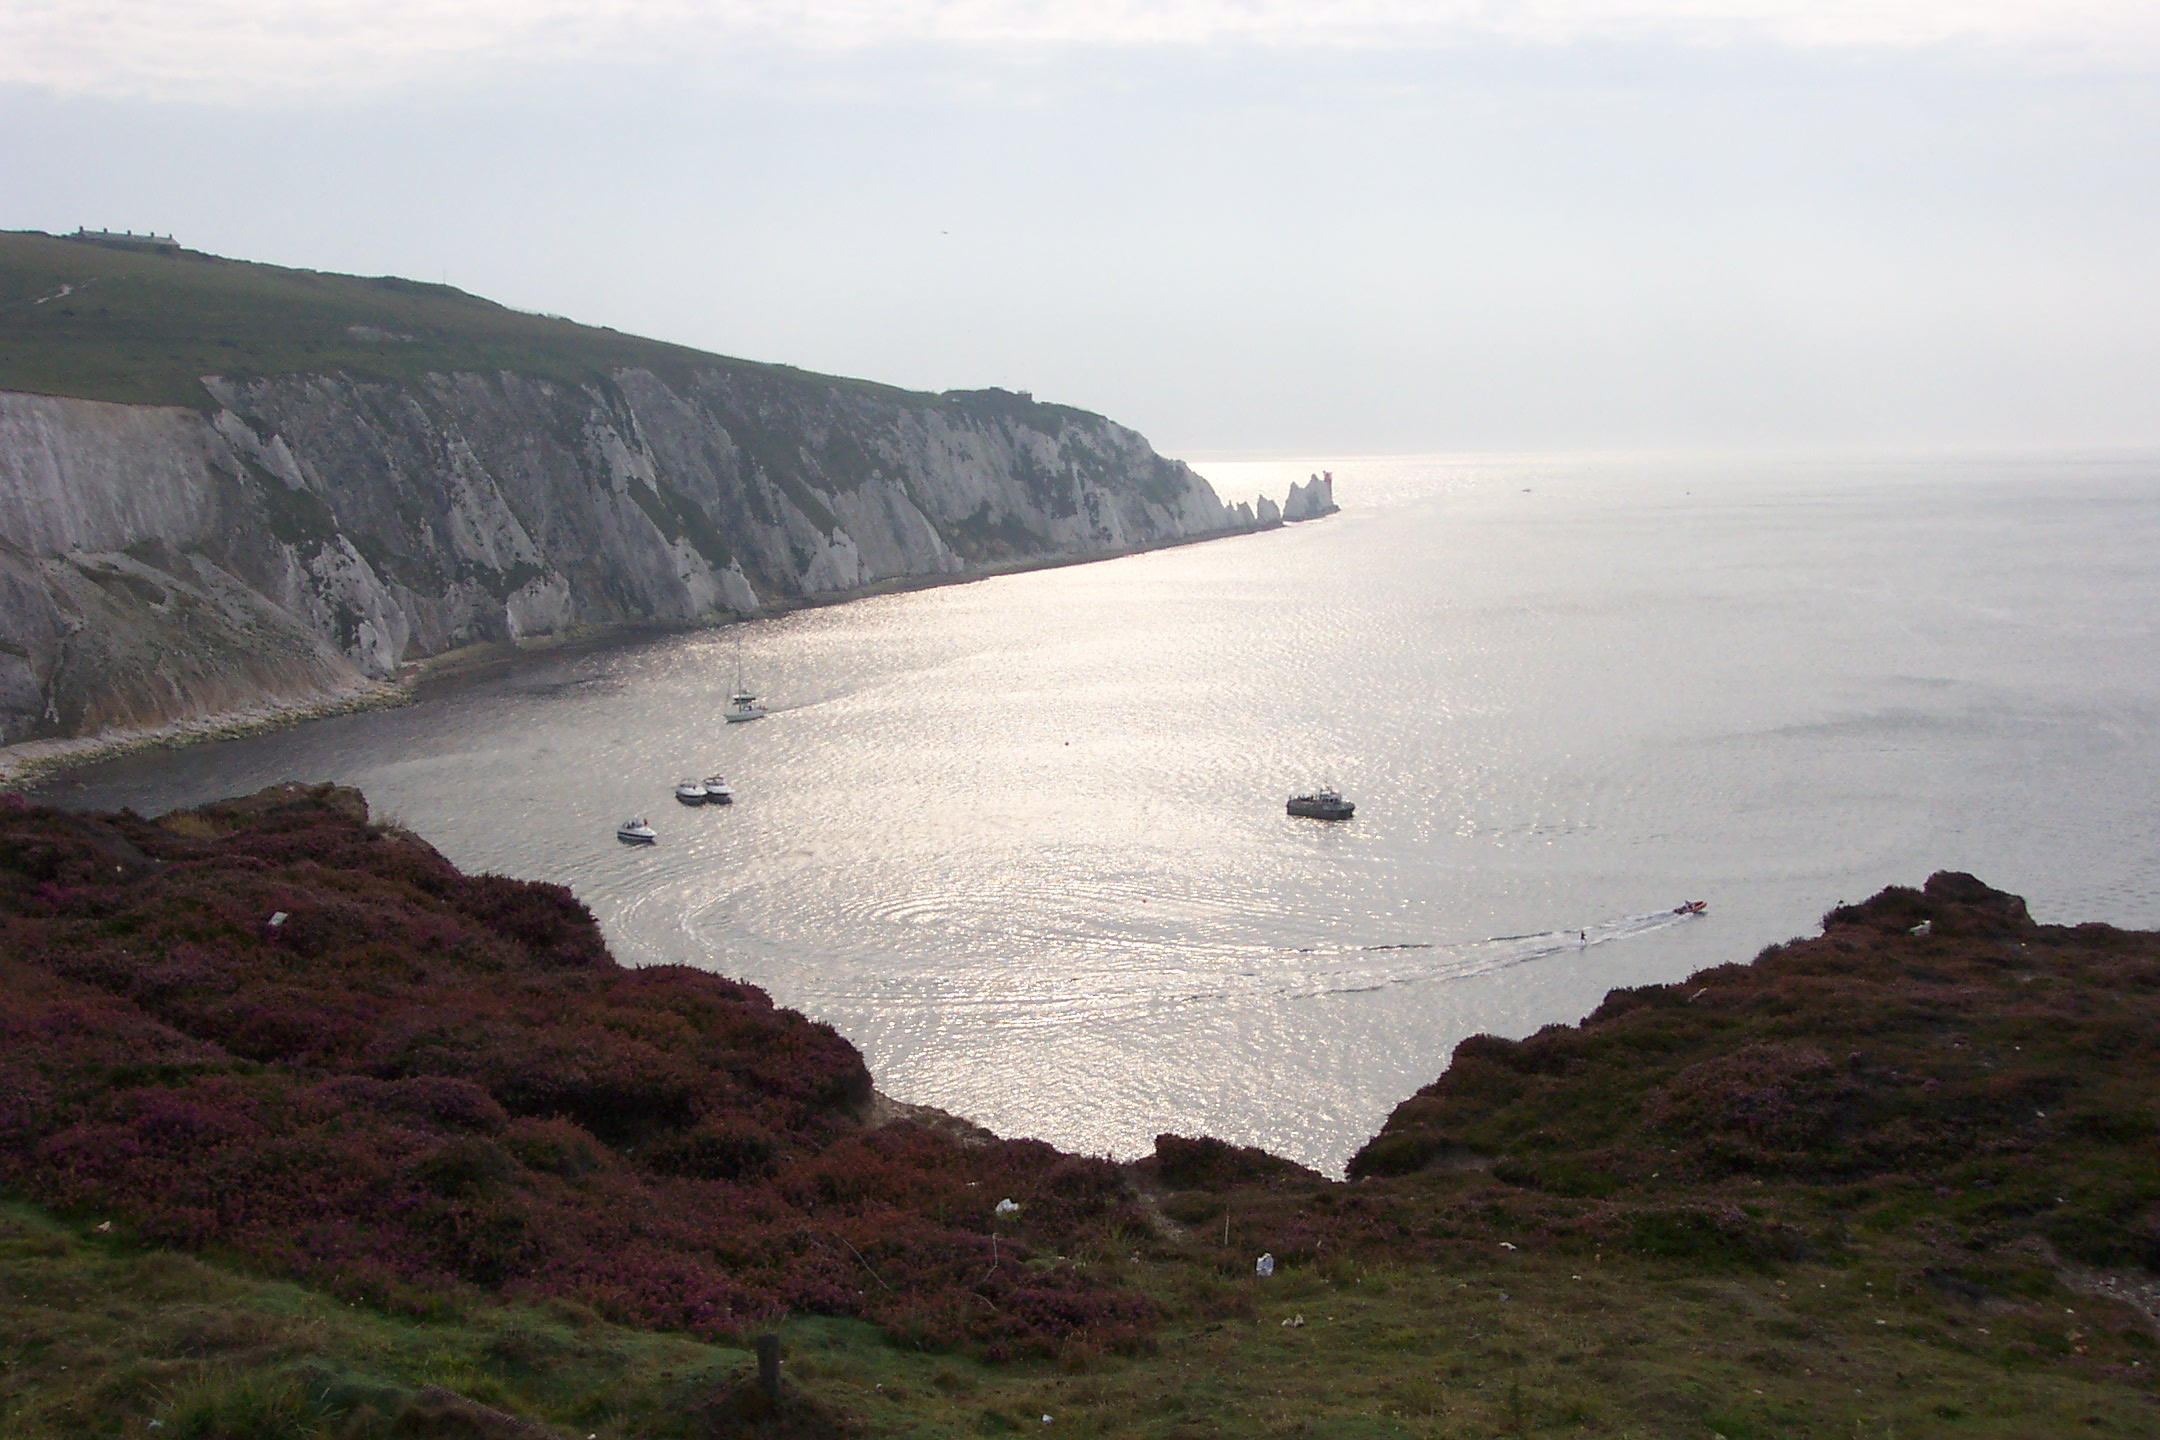 View of The Needles, Isle of Wight